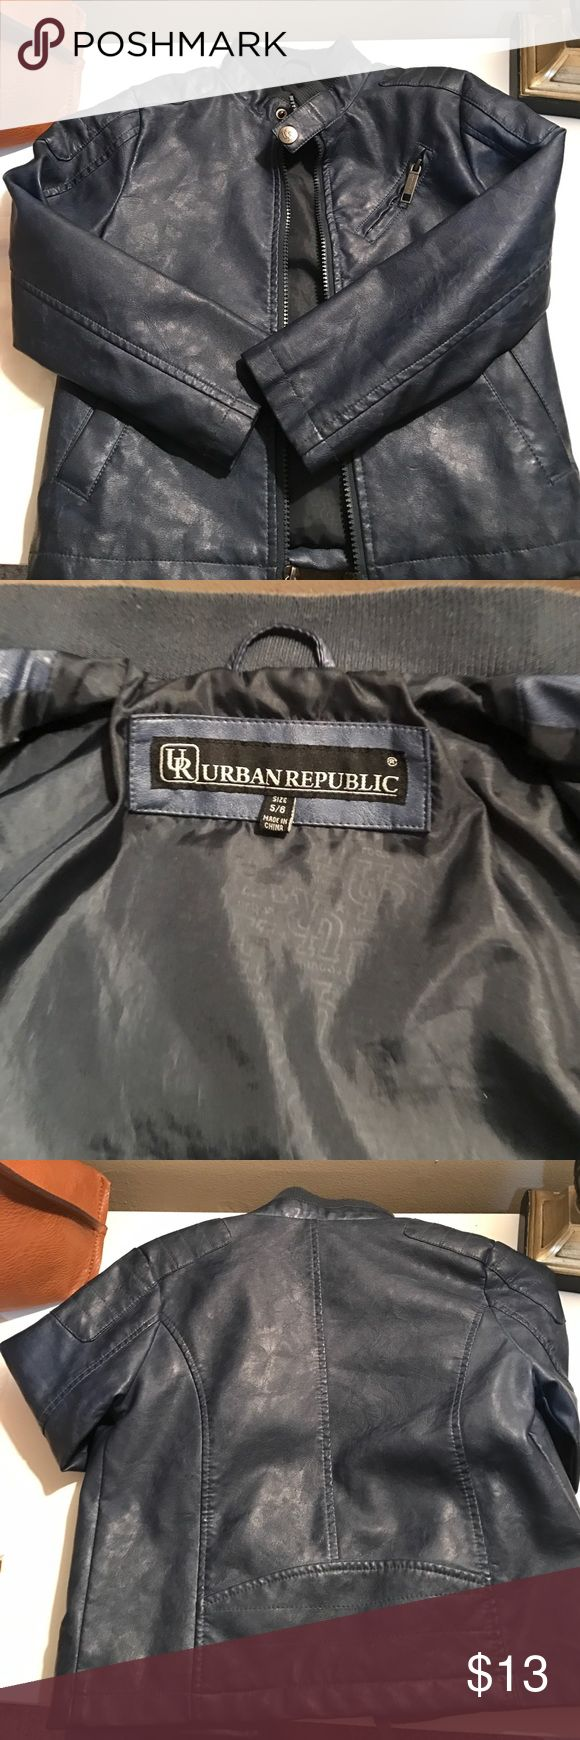 Boys Leather Faux Leather Jacket Like new wore for Easter 🐣. The collar show wear but can be improved. Urban Republic Jackets & Coats